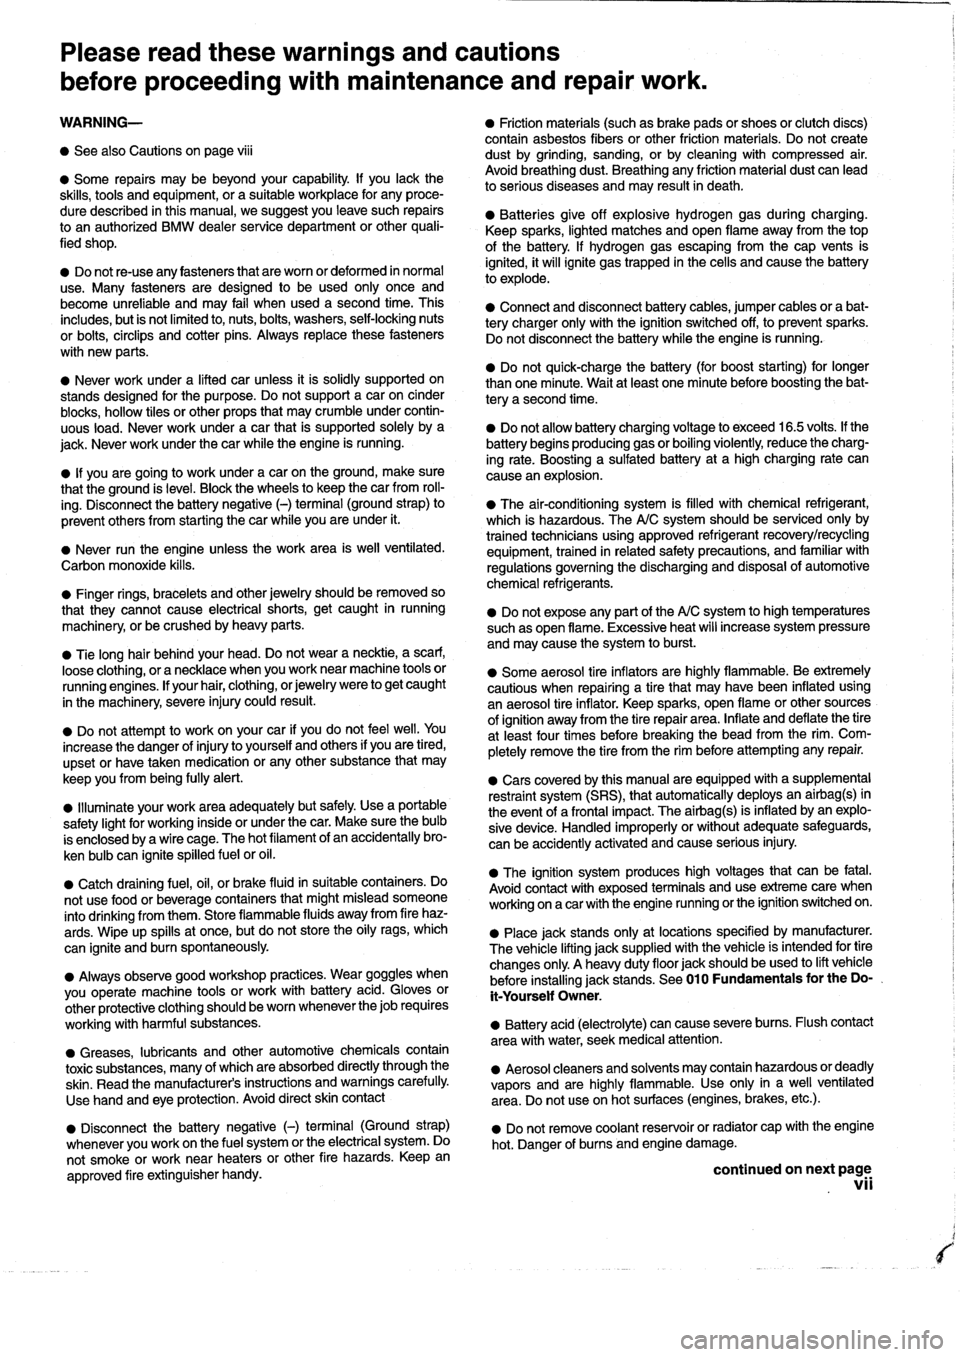 BMW 323i 1993 E36 Workshop Manual, Page 7